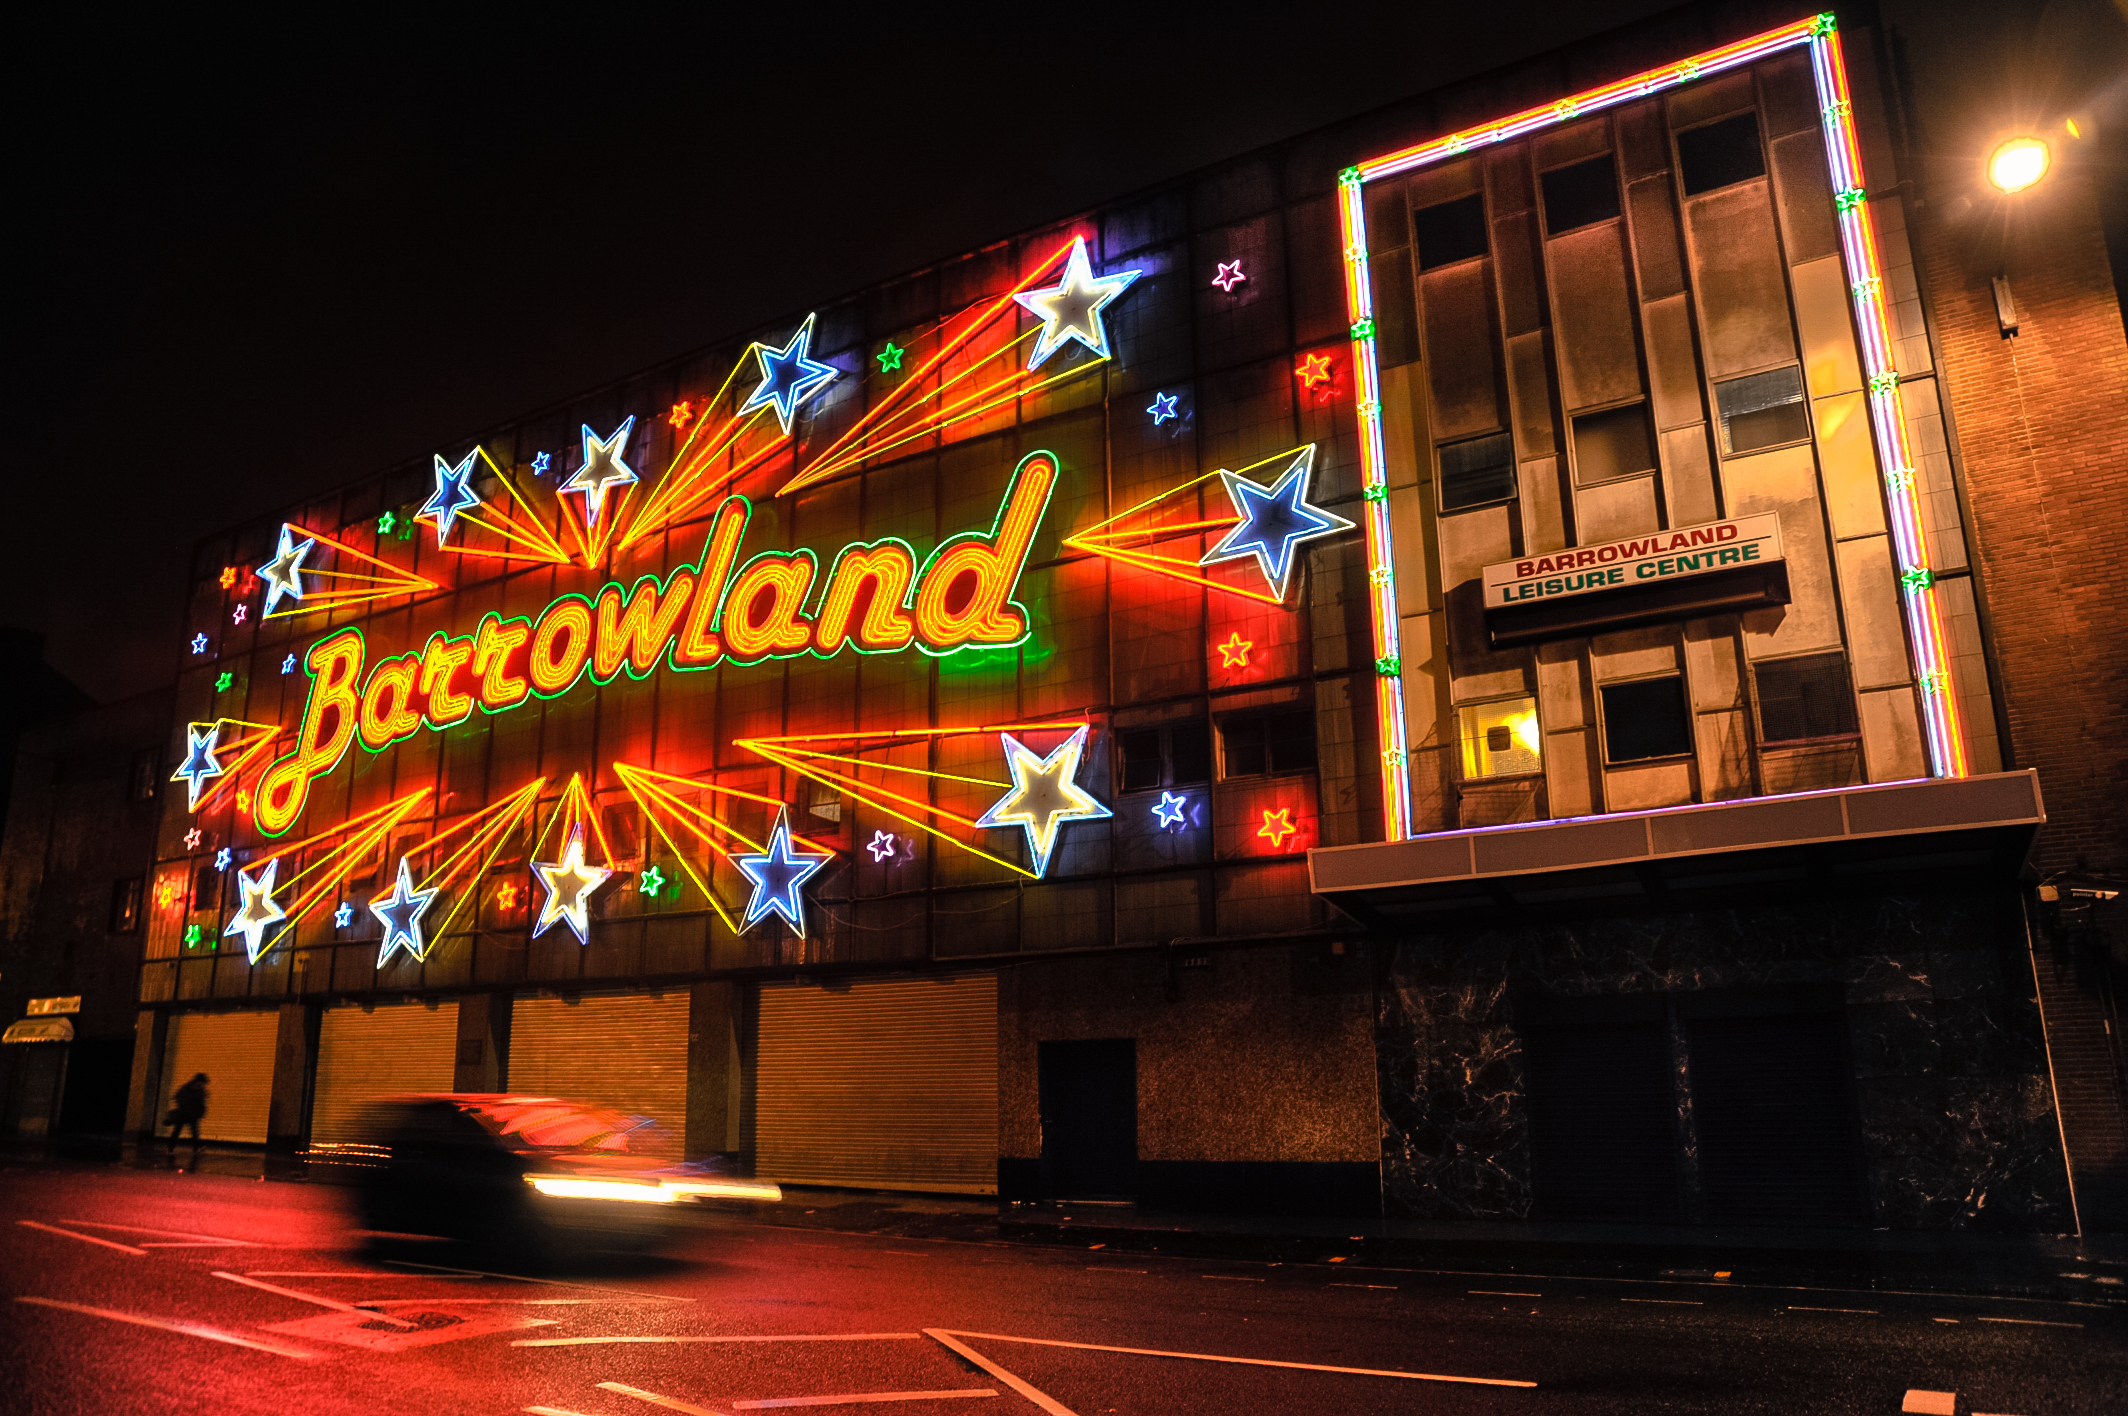 The Barrowland Ballroom